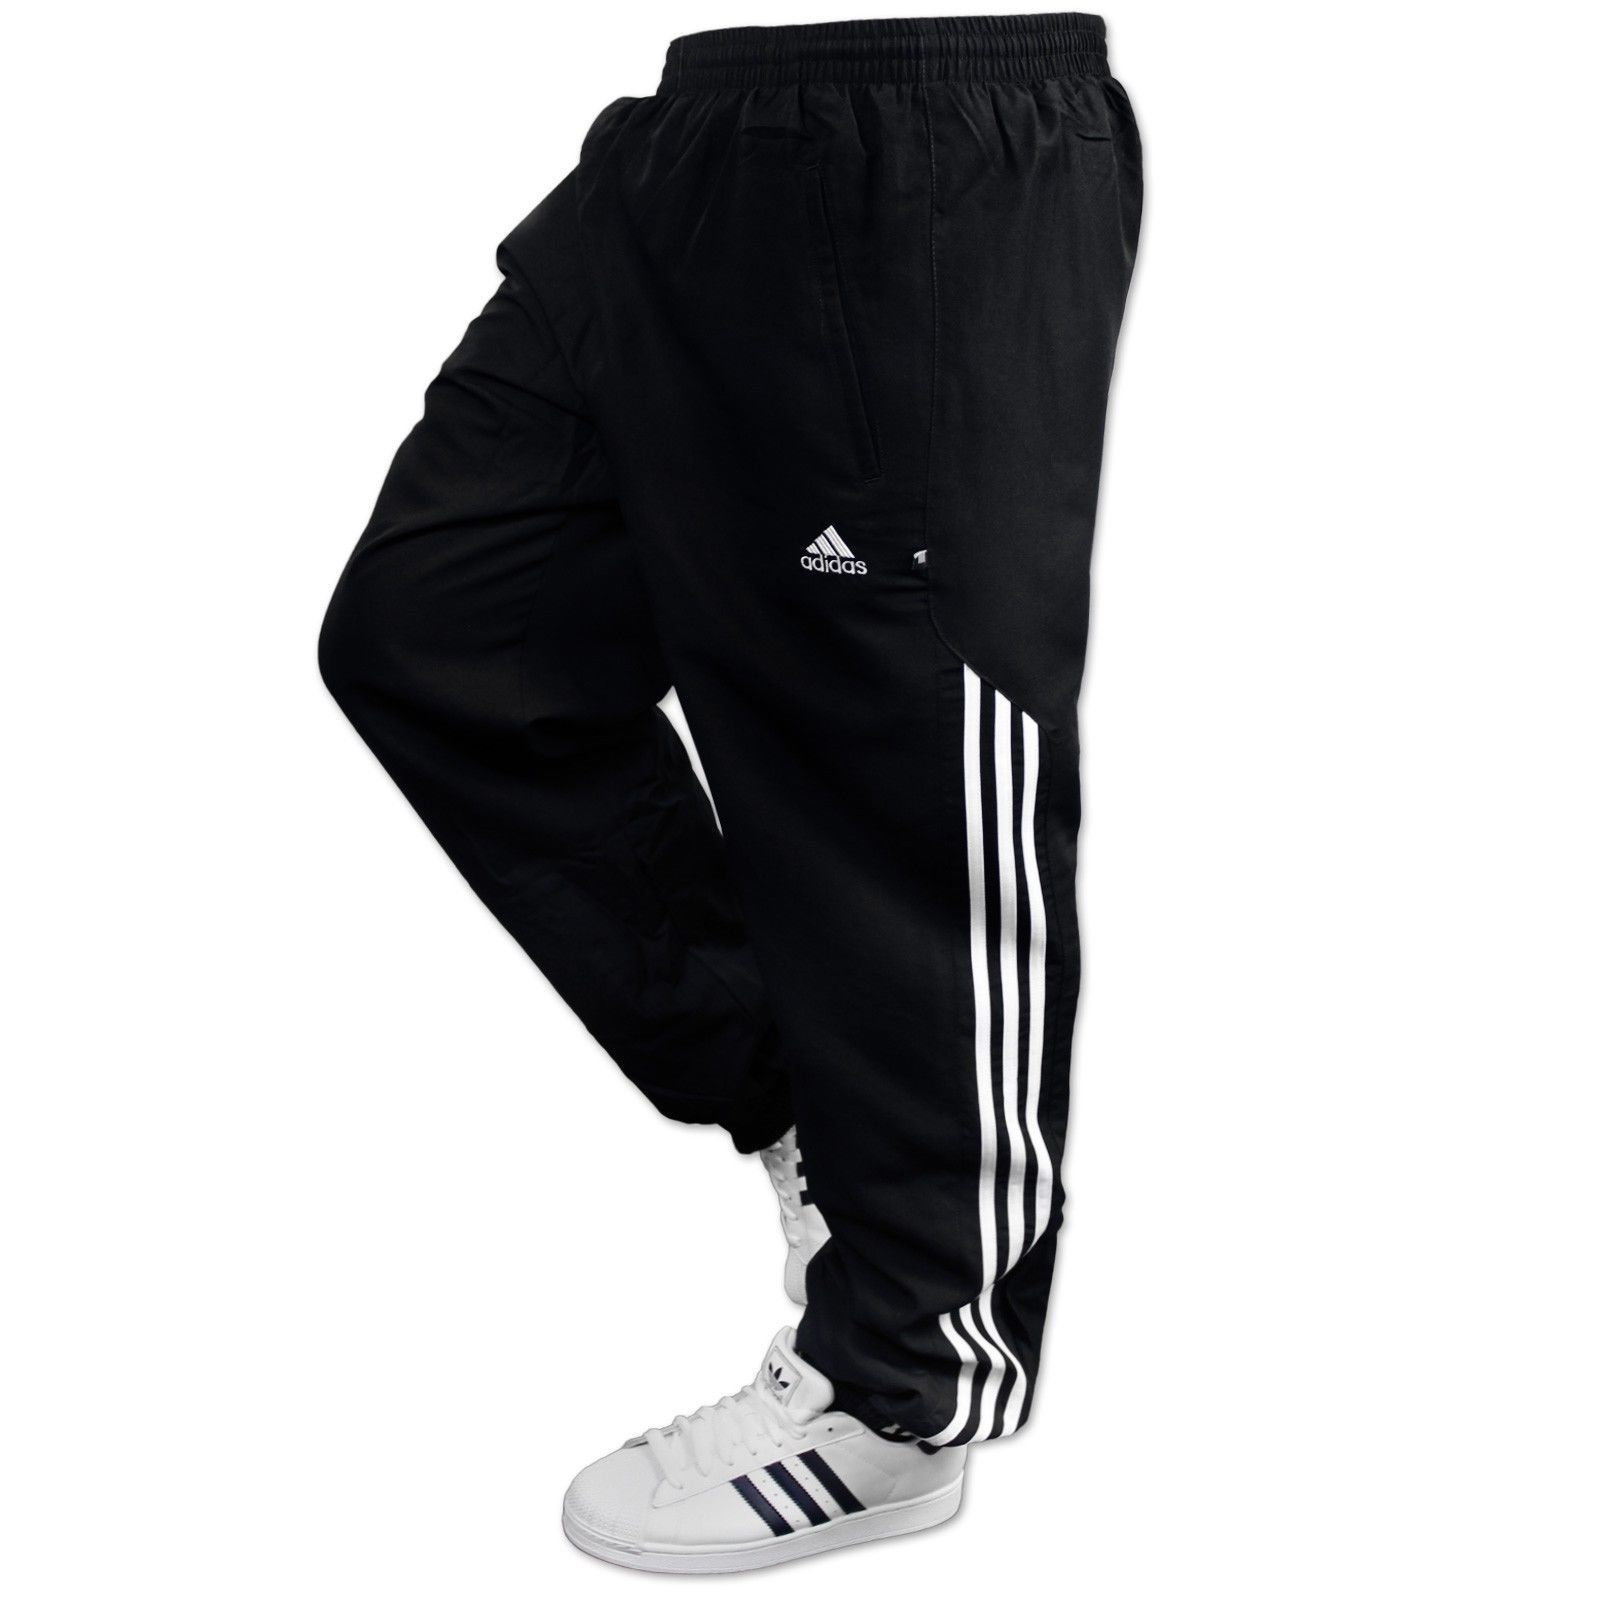 8342400c84a7 Adidas AD Woven Sting mens Jogging Pant Tracksuit Bottoms Track Pants  Cuffed Black